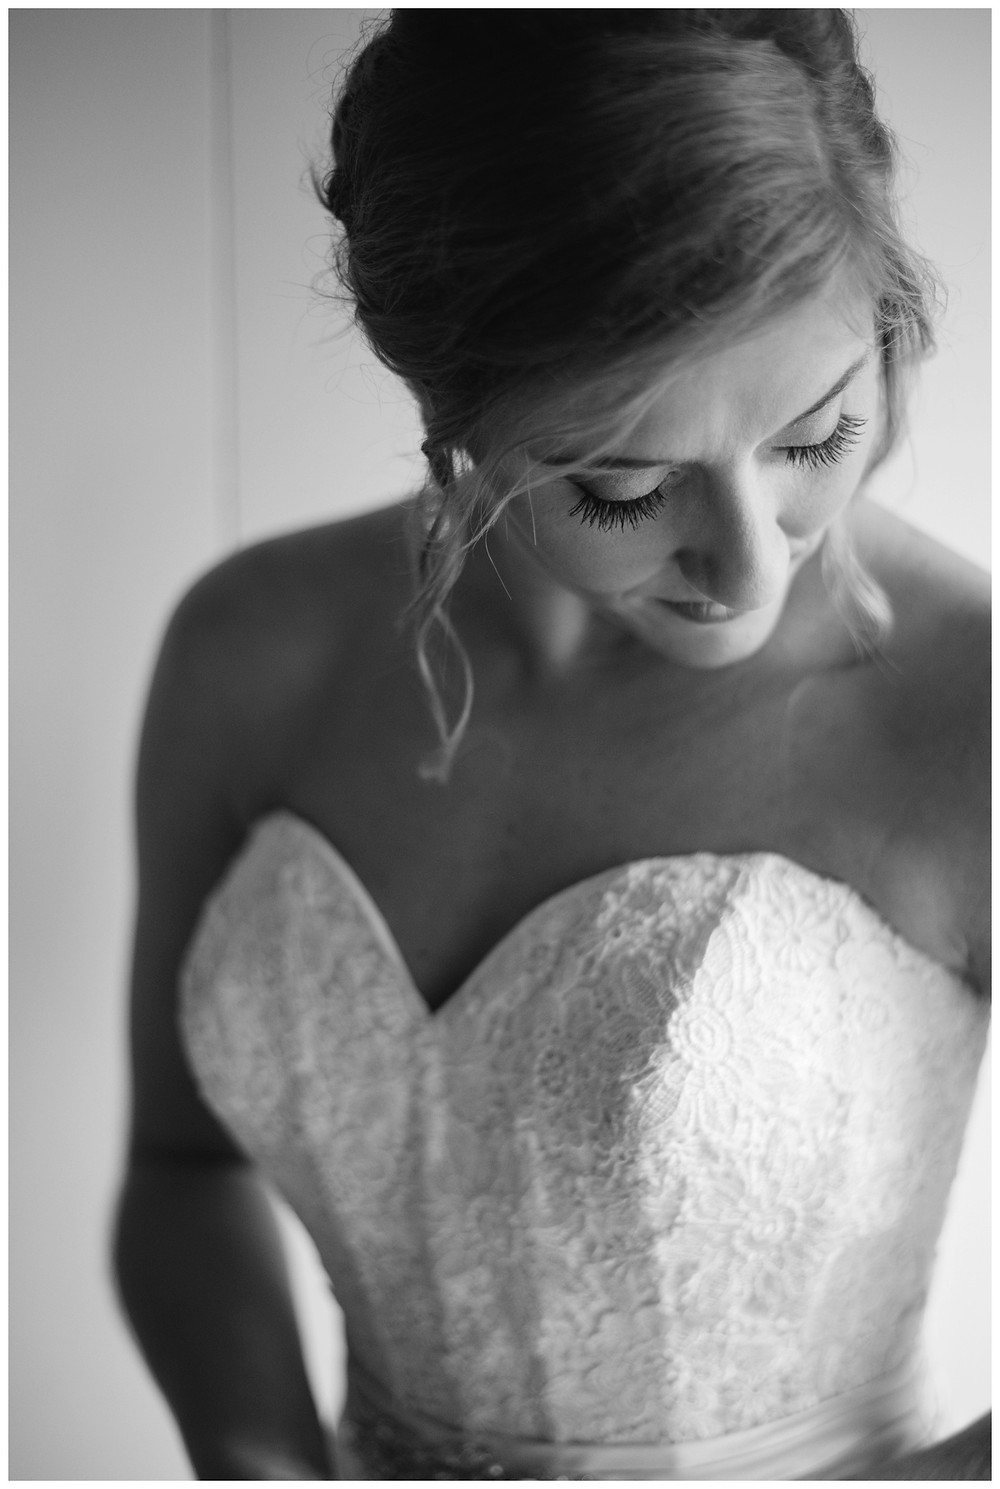 bridal-portrait-at-brighton-acres-wedding-by-green-bay-wedding-photographer-kyra-rane-photography